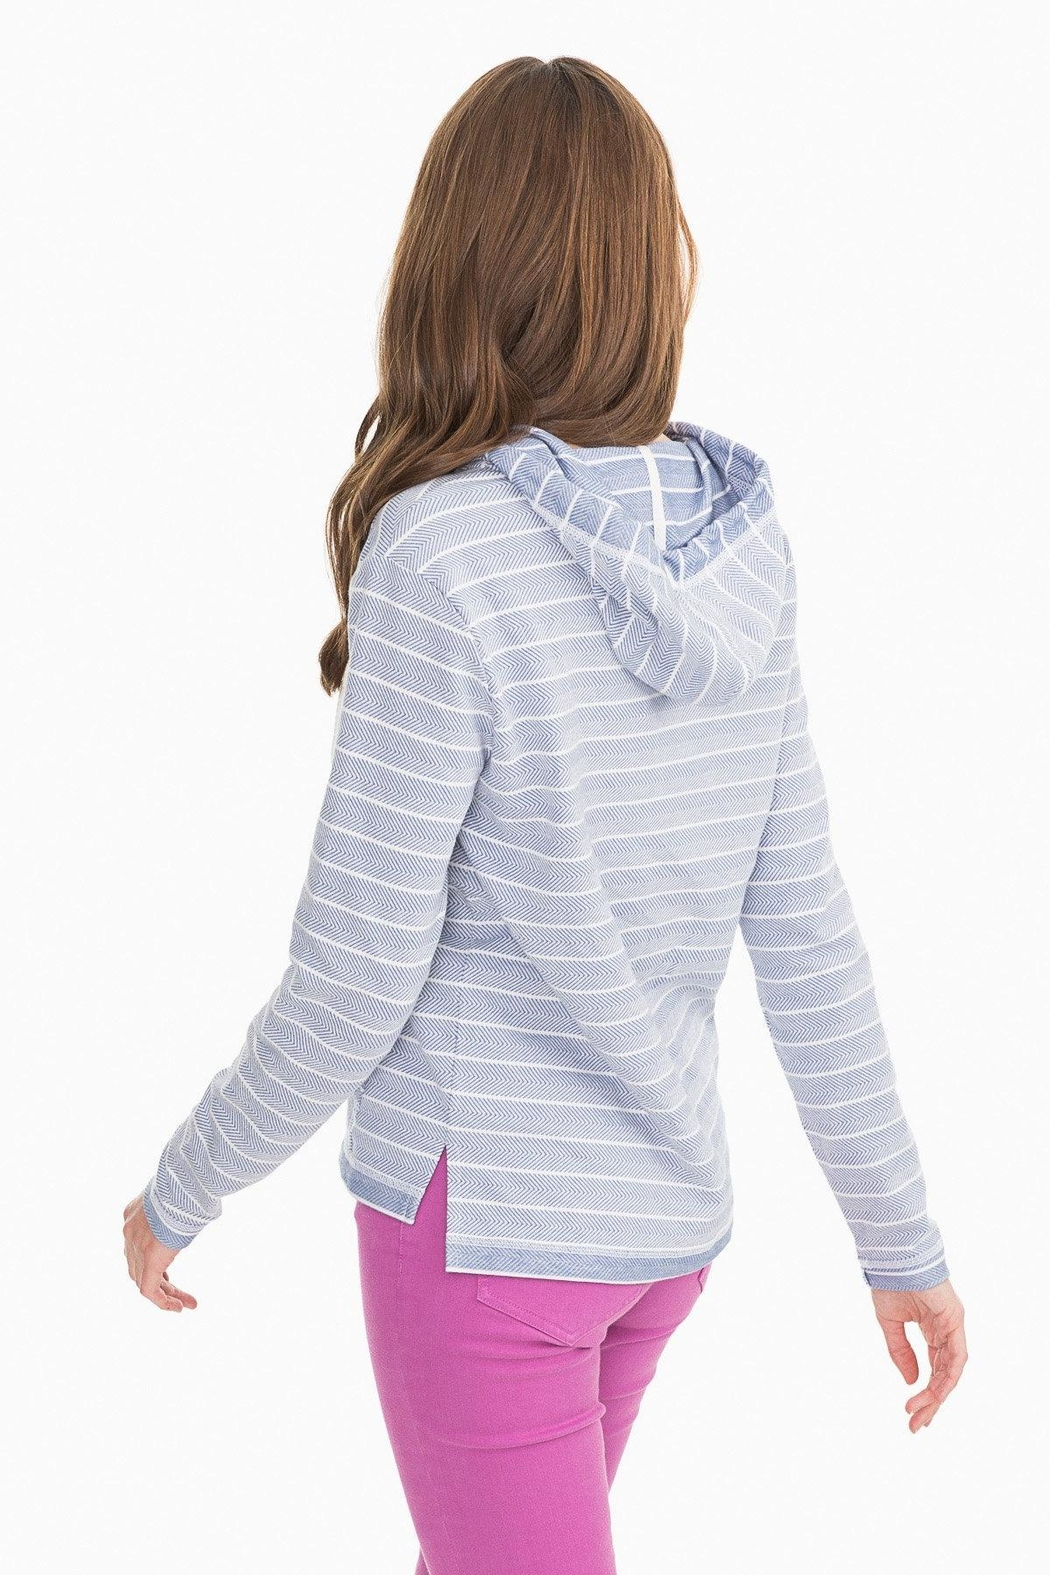 Southern Tide Paiton Striped Hoodie - Front Full Image